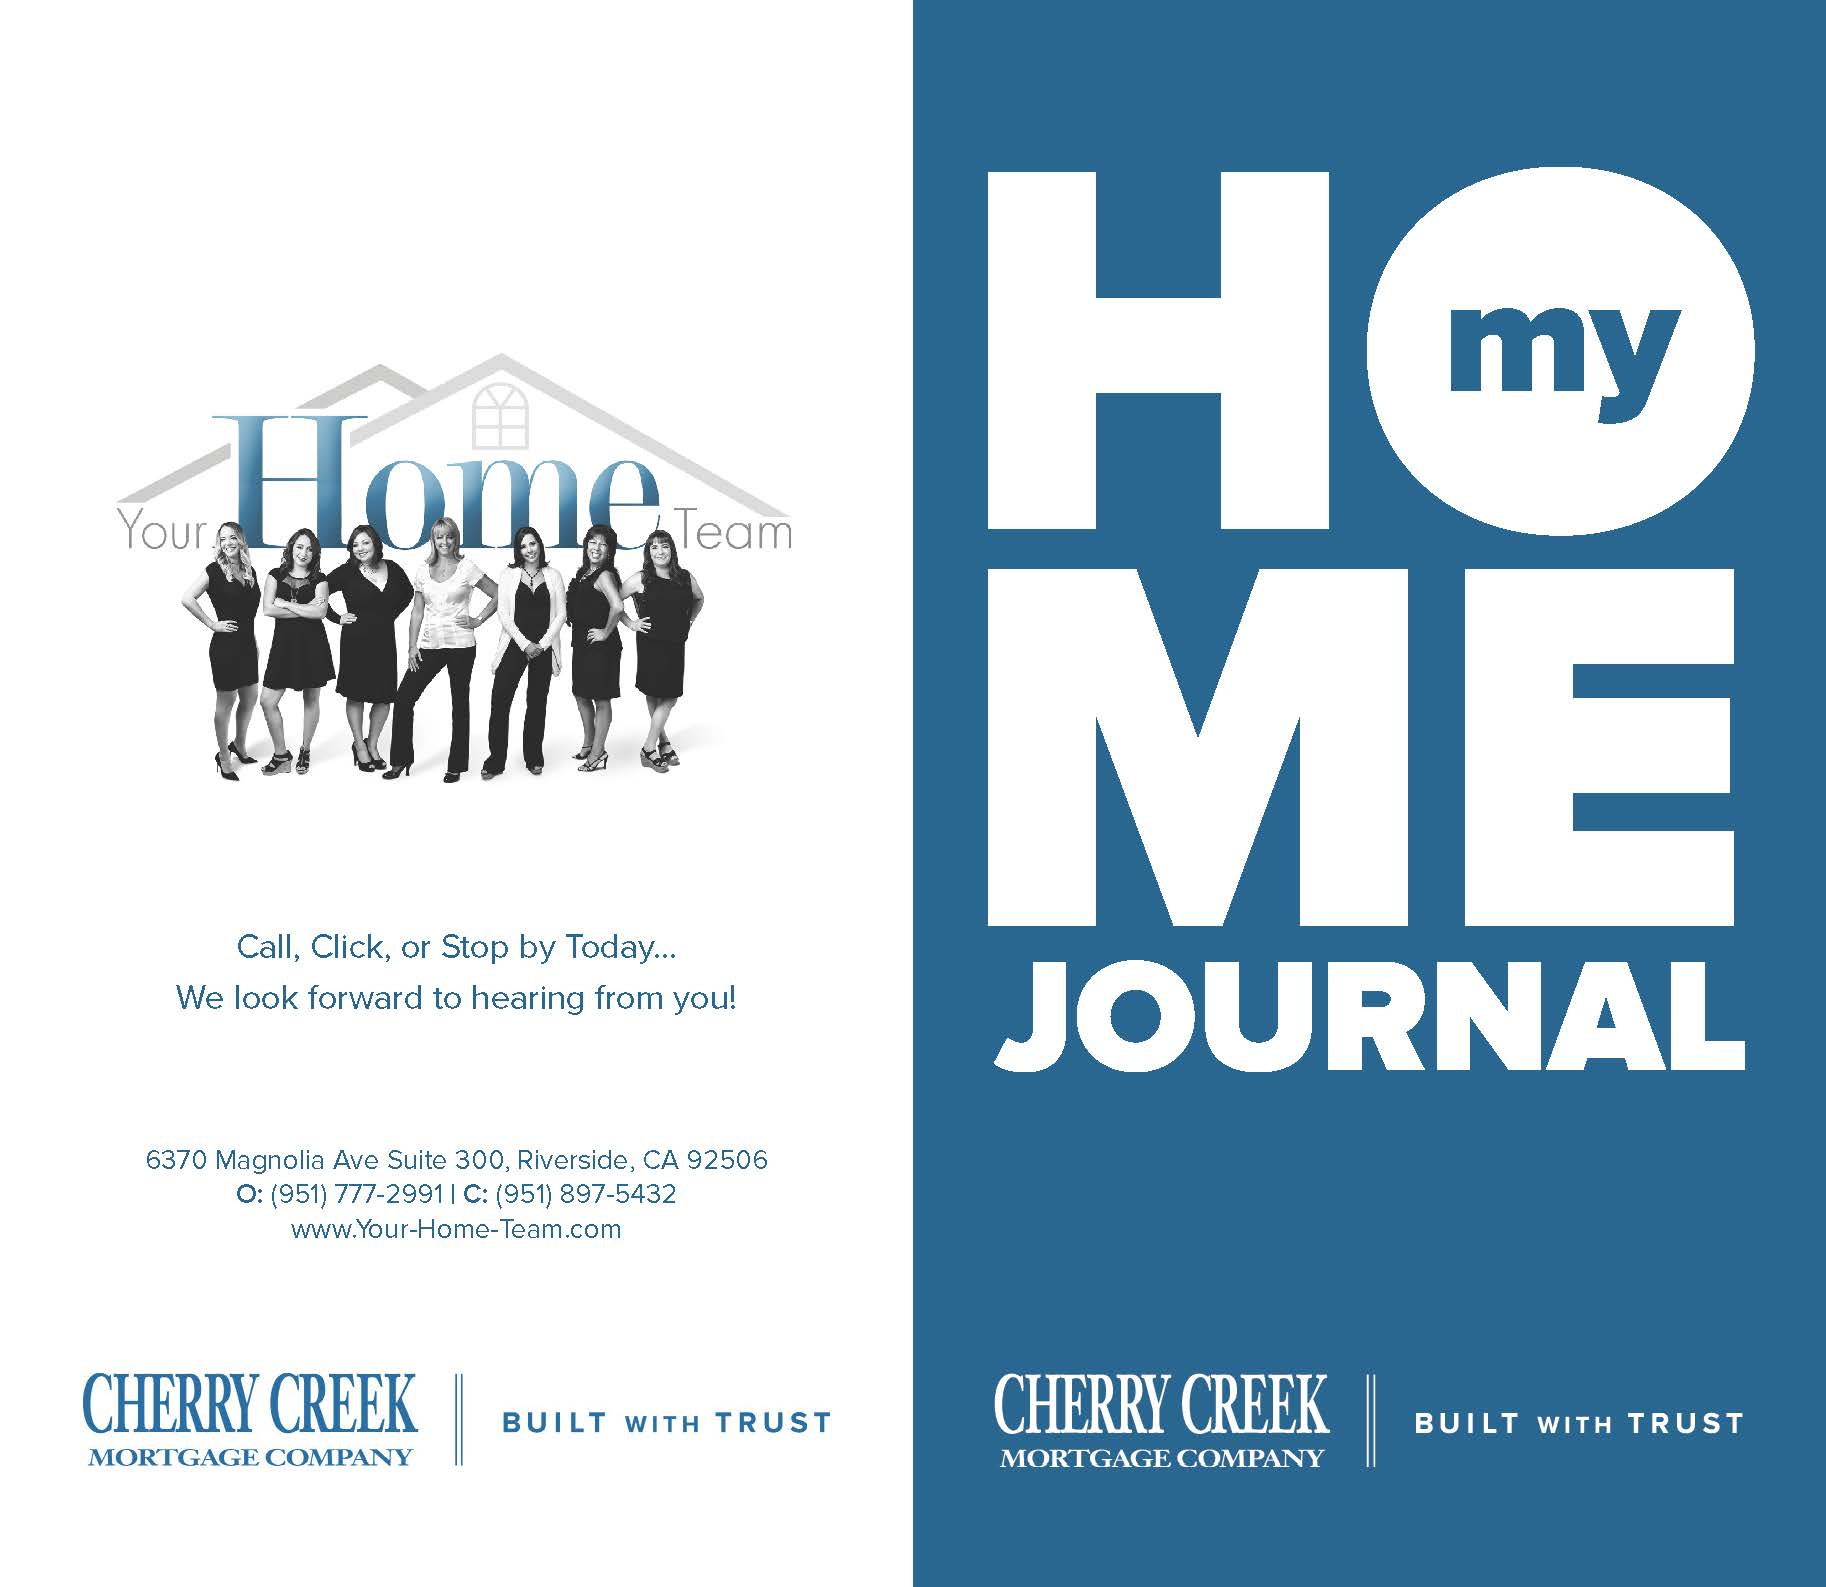 myjourneyhome-spread_Page_01.jpg